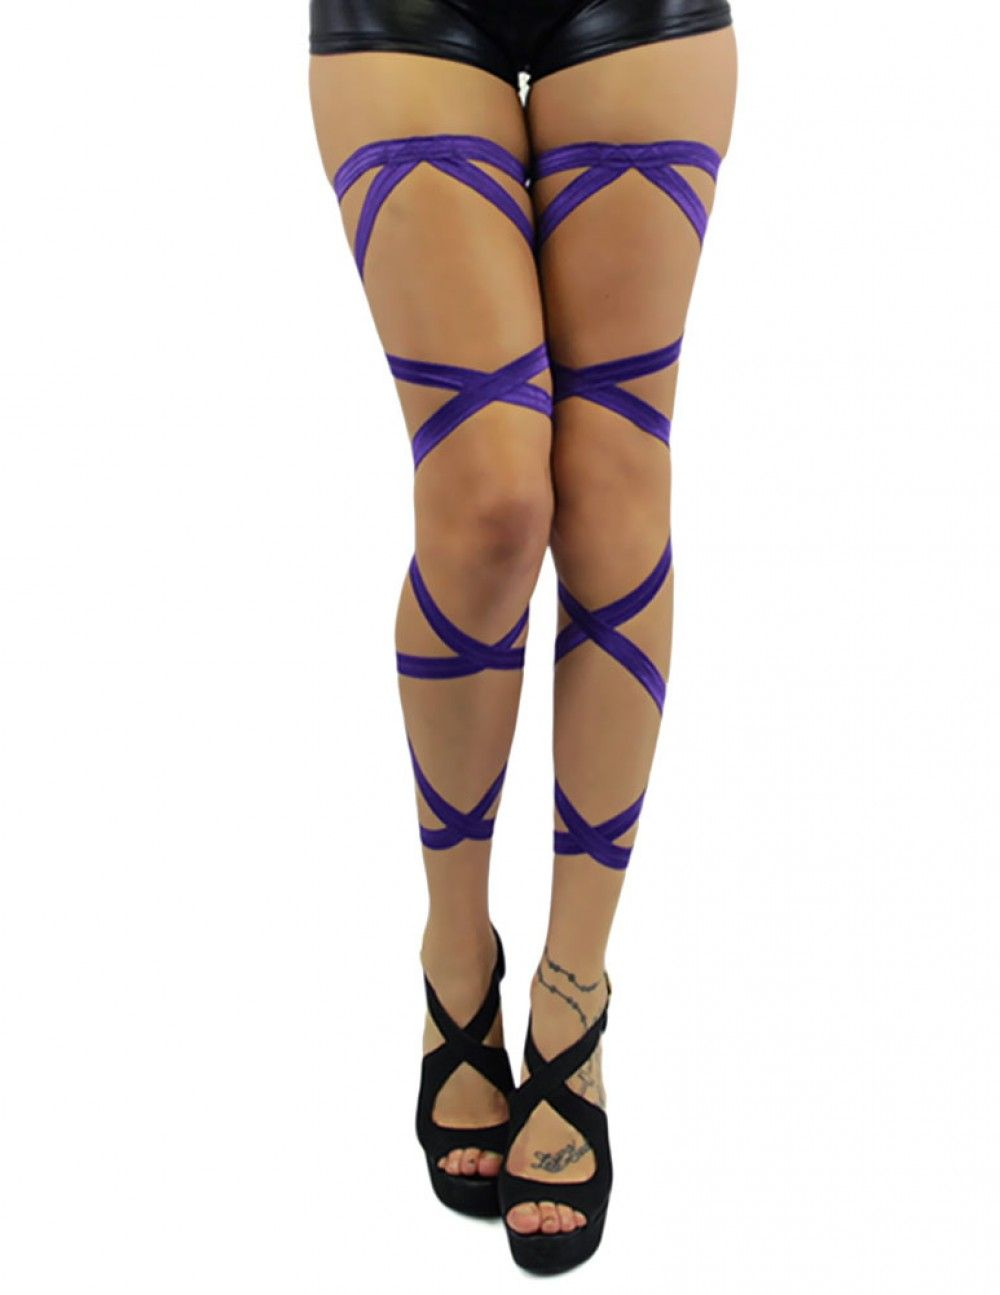 62144219f5c Pair of Non-Slip Purple Leg Wraps Perffffff. I love purple!  iHeartRaves   iHeartRaveFashion